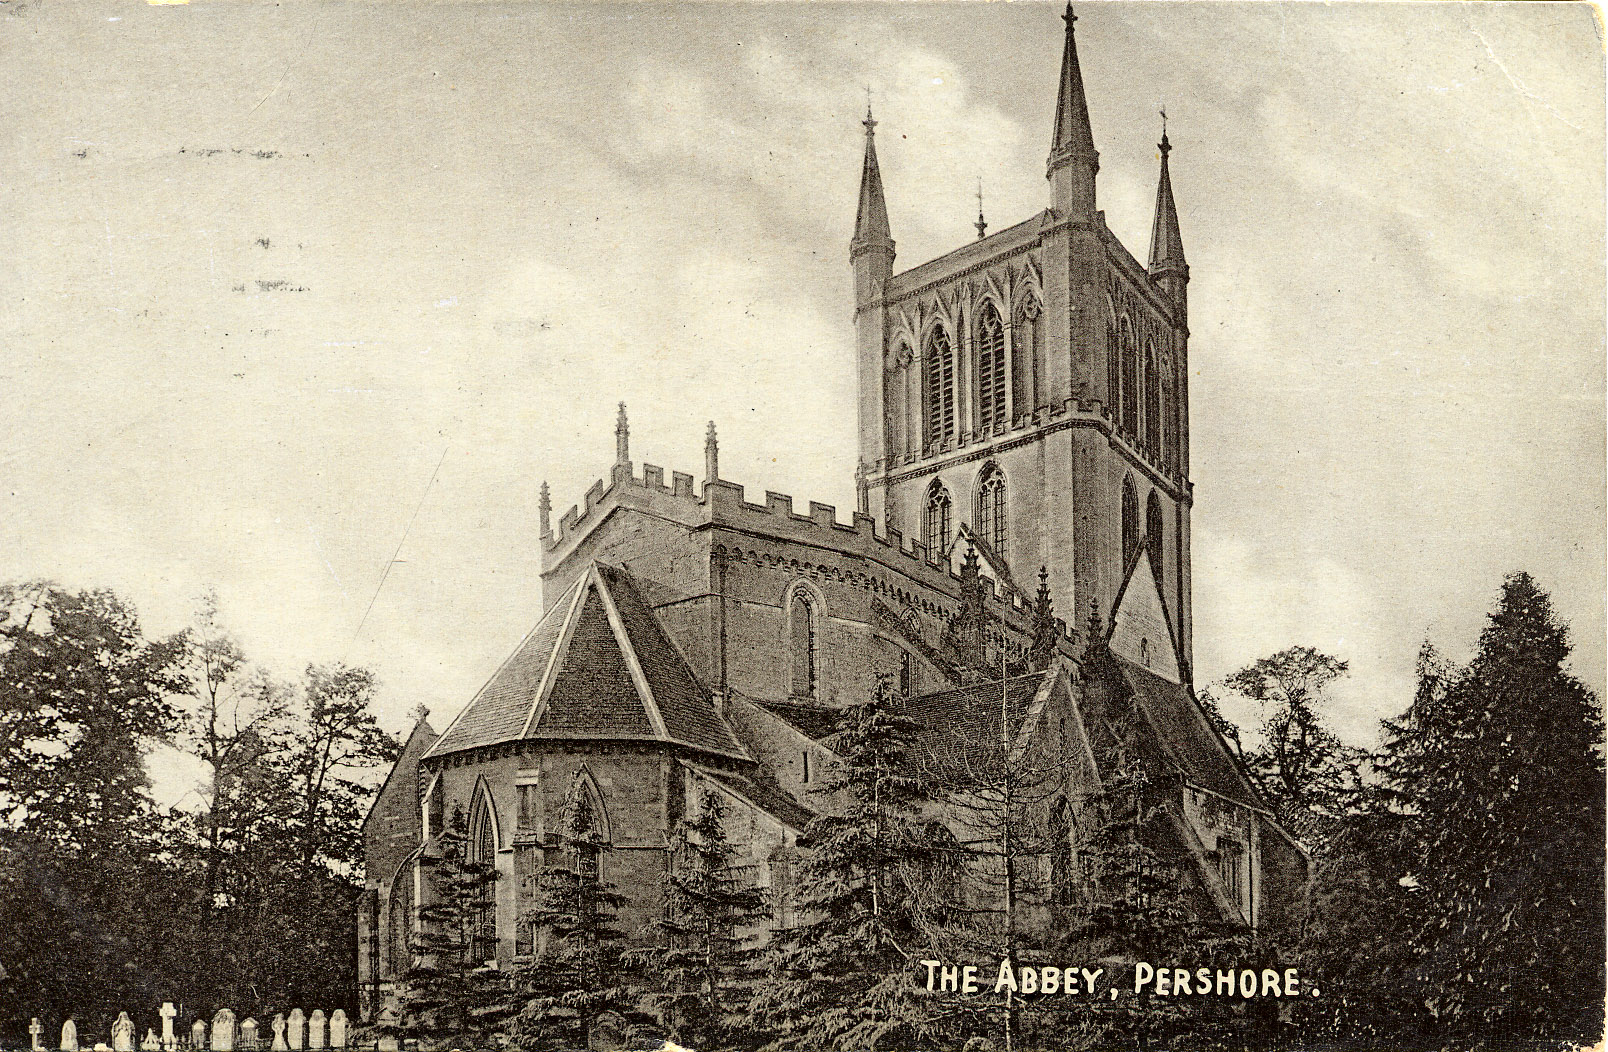 Pershore Abbey History Pershore Abbey Features in